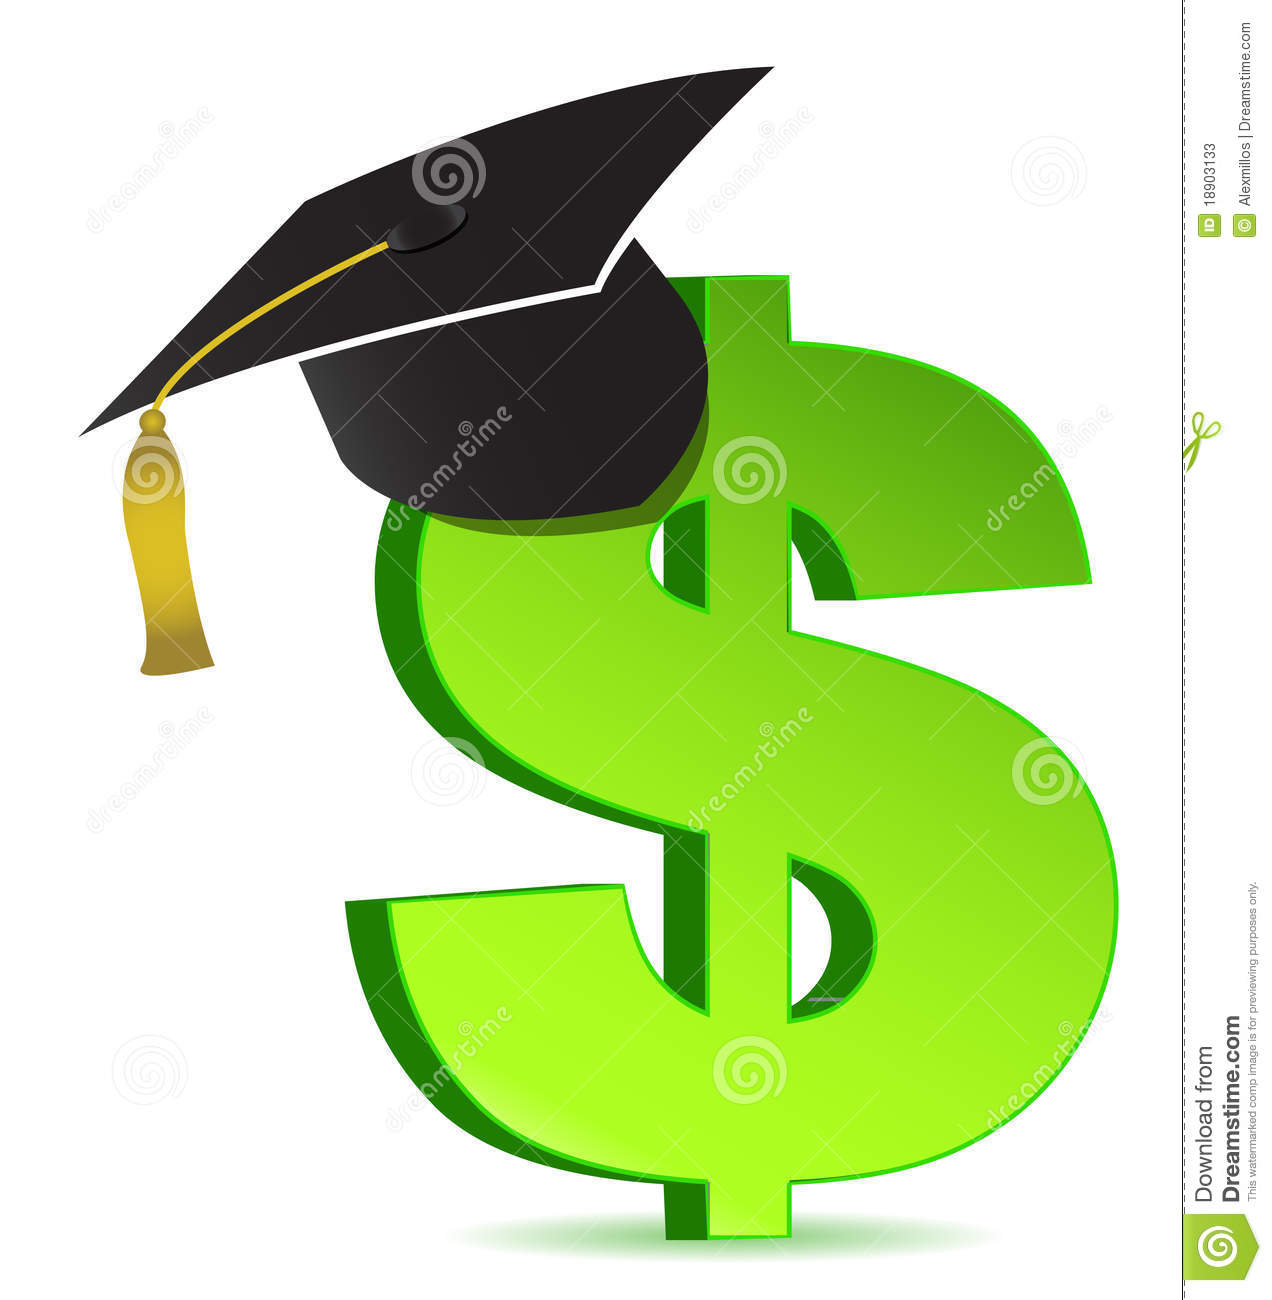 Web Design Scholarships